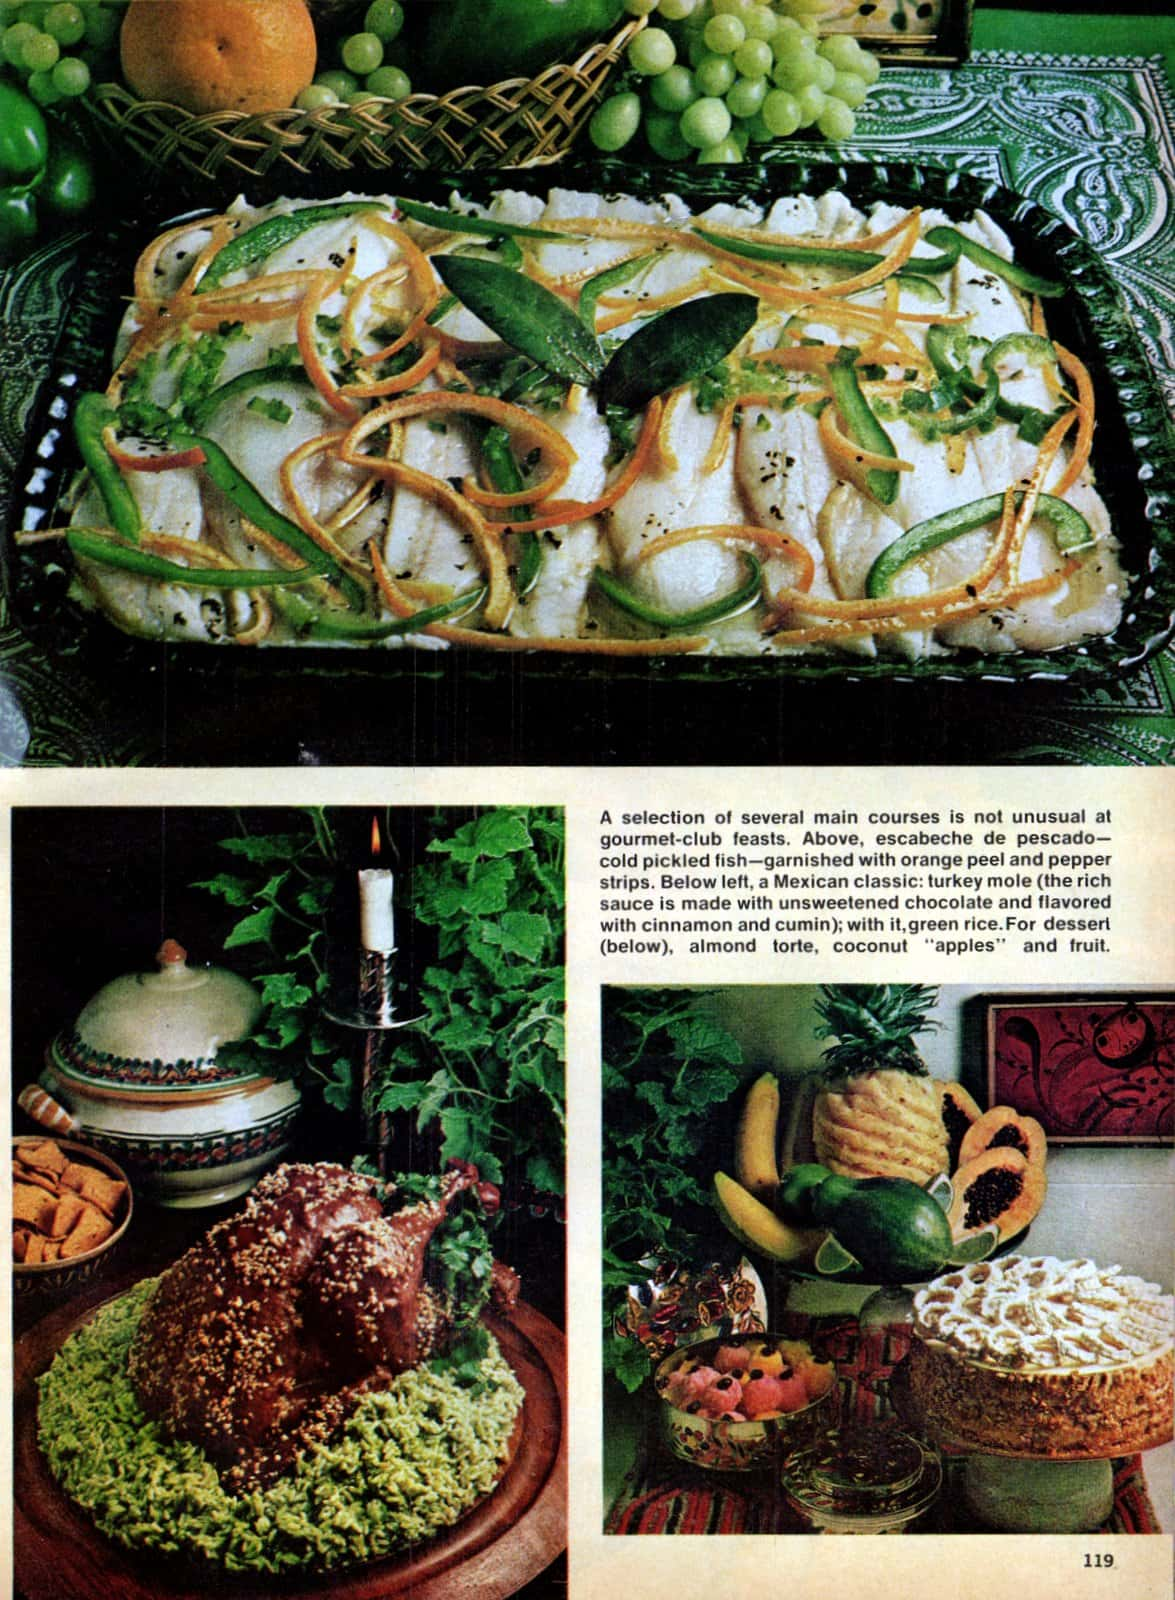 Vintage Mexican food, 1970s-style (1)